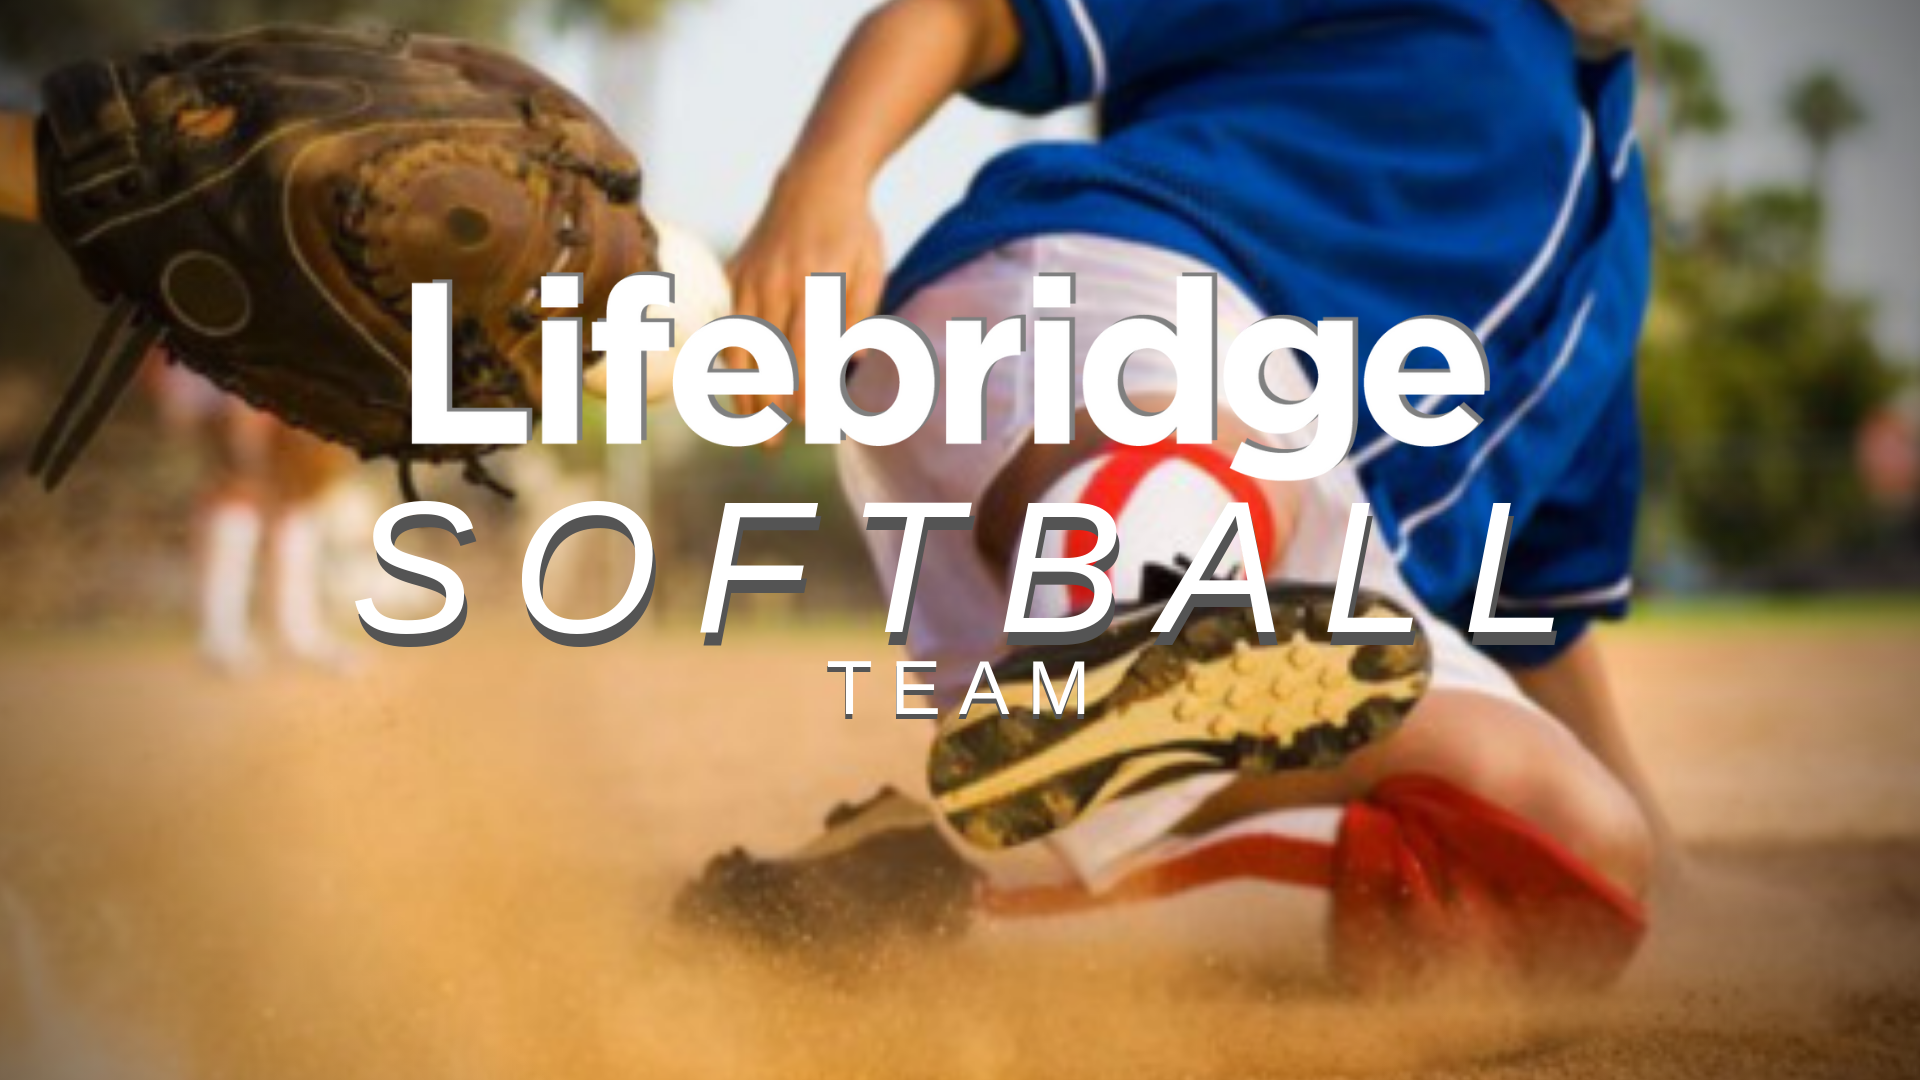 Our church softball team has three seasons throughout the year. Right now, we have one team and that team is full, but we are hoping to add more teams so You are invited to join Lifebridge's softball team as they compete against other church teams in the area. All skill levels are welcome and the game are always played with fellowship and relationship building being the end goal.